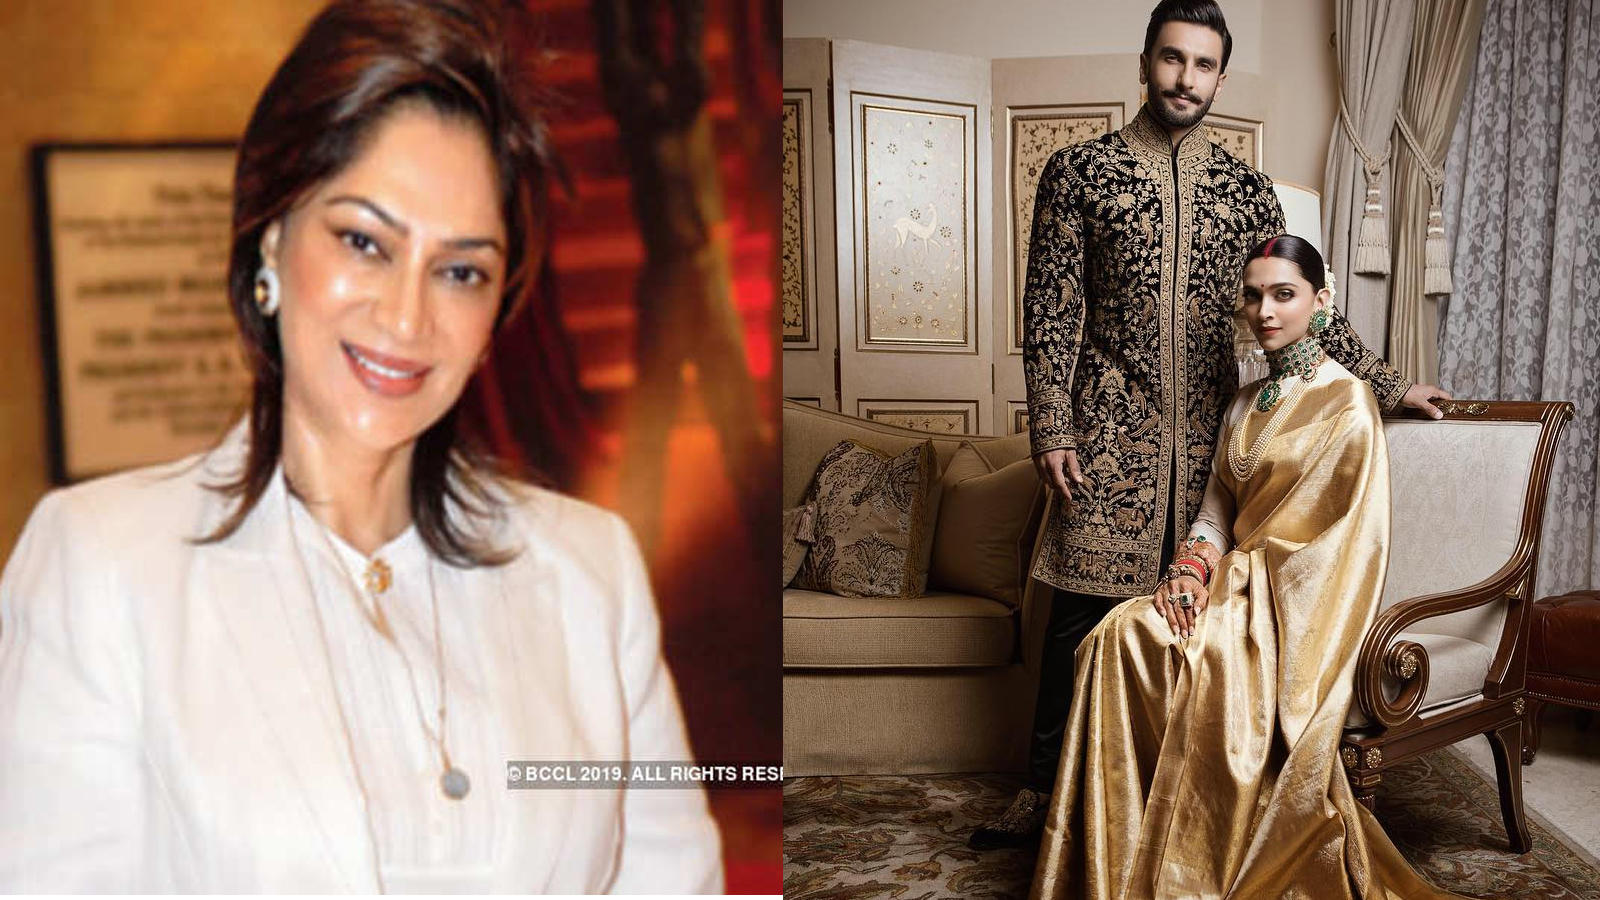 deepika-padukone-and-ranveer-singh-to-be-first-guests-on-the-new-season-of-rendezvous-with-simi-garewal